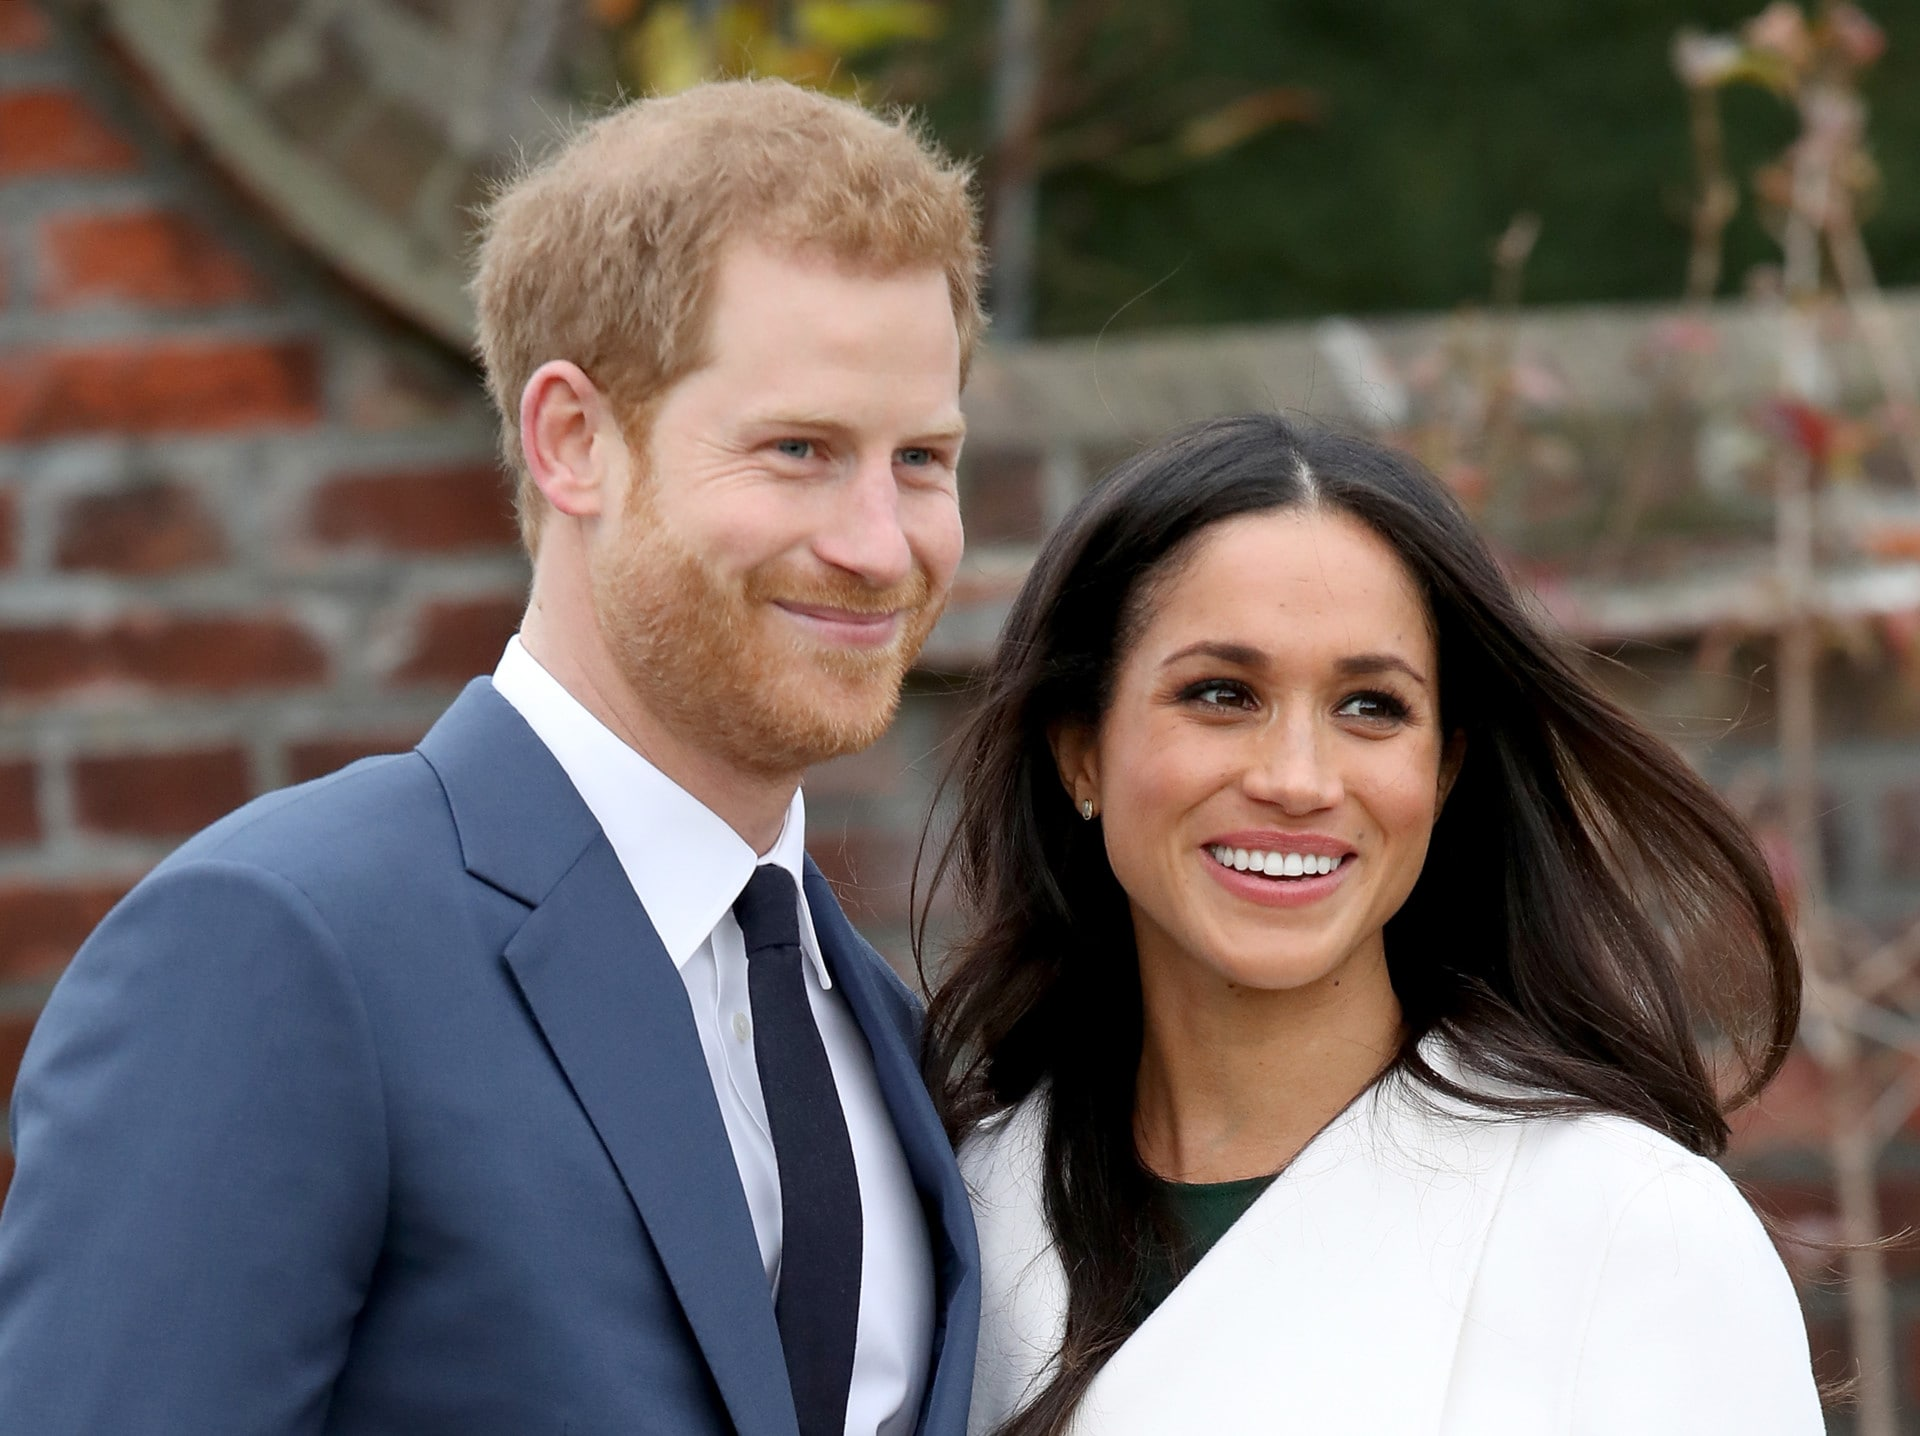 An investigation into who will design Meghan Markle's wedding dress